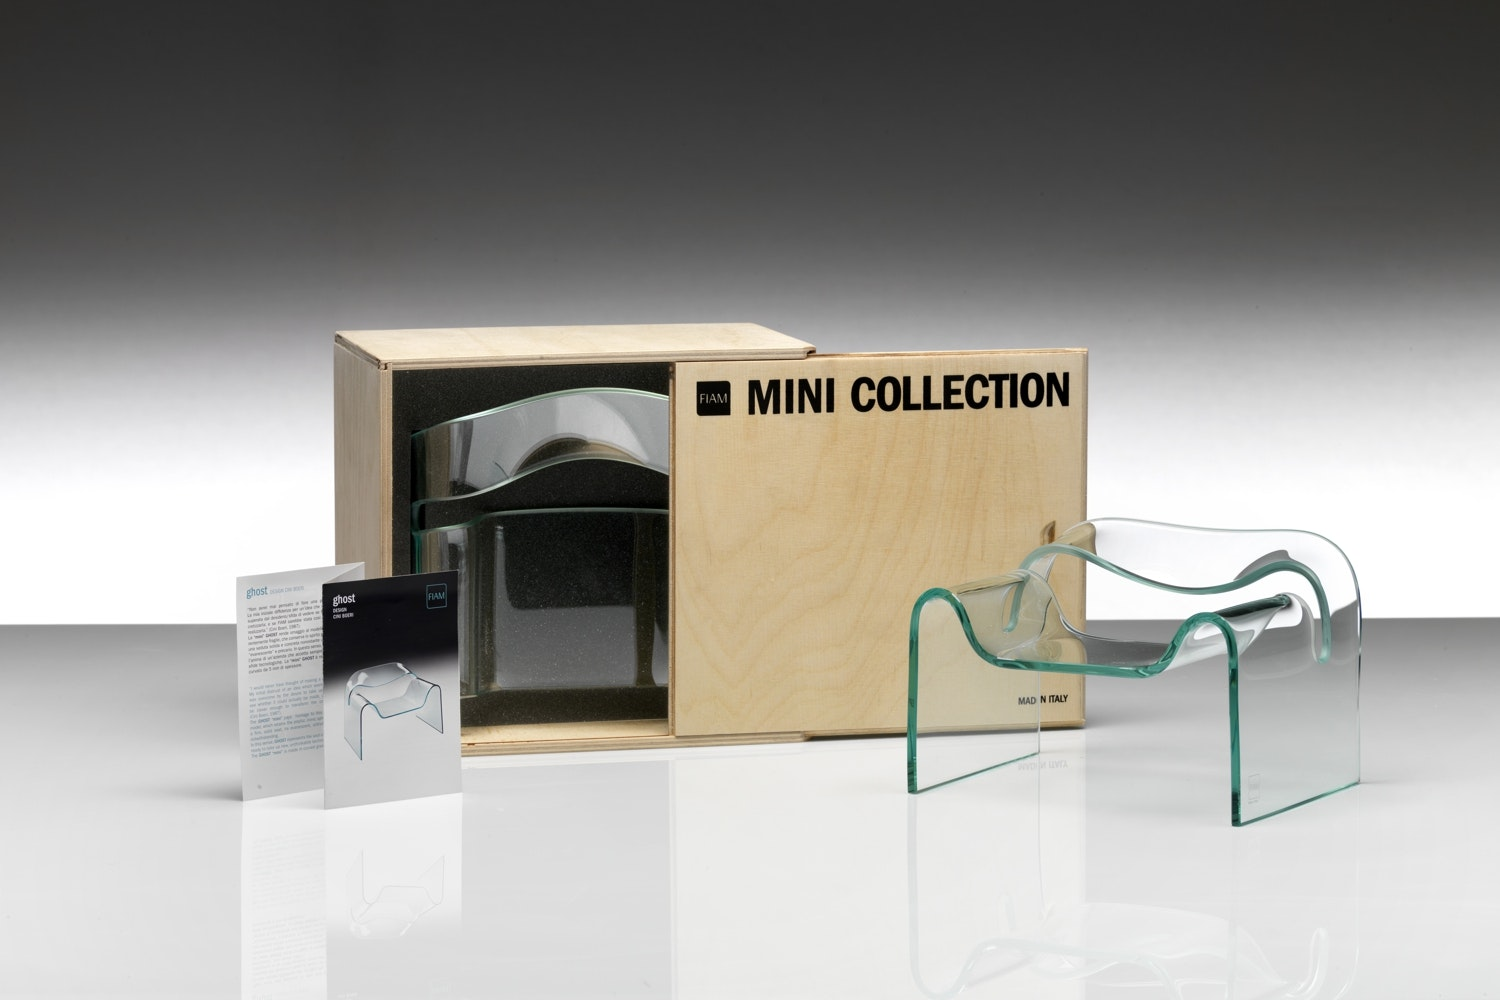 Mini Collection Miniatures by Fiam Italia